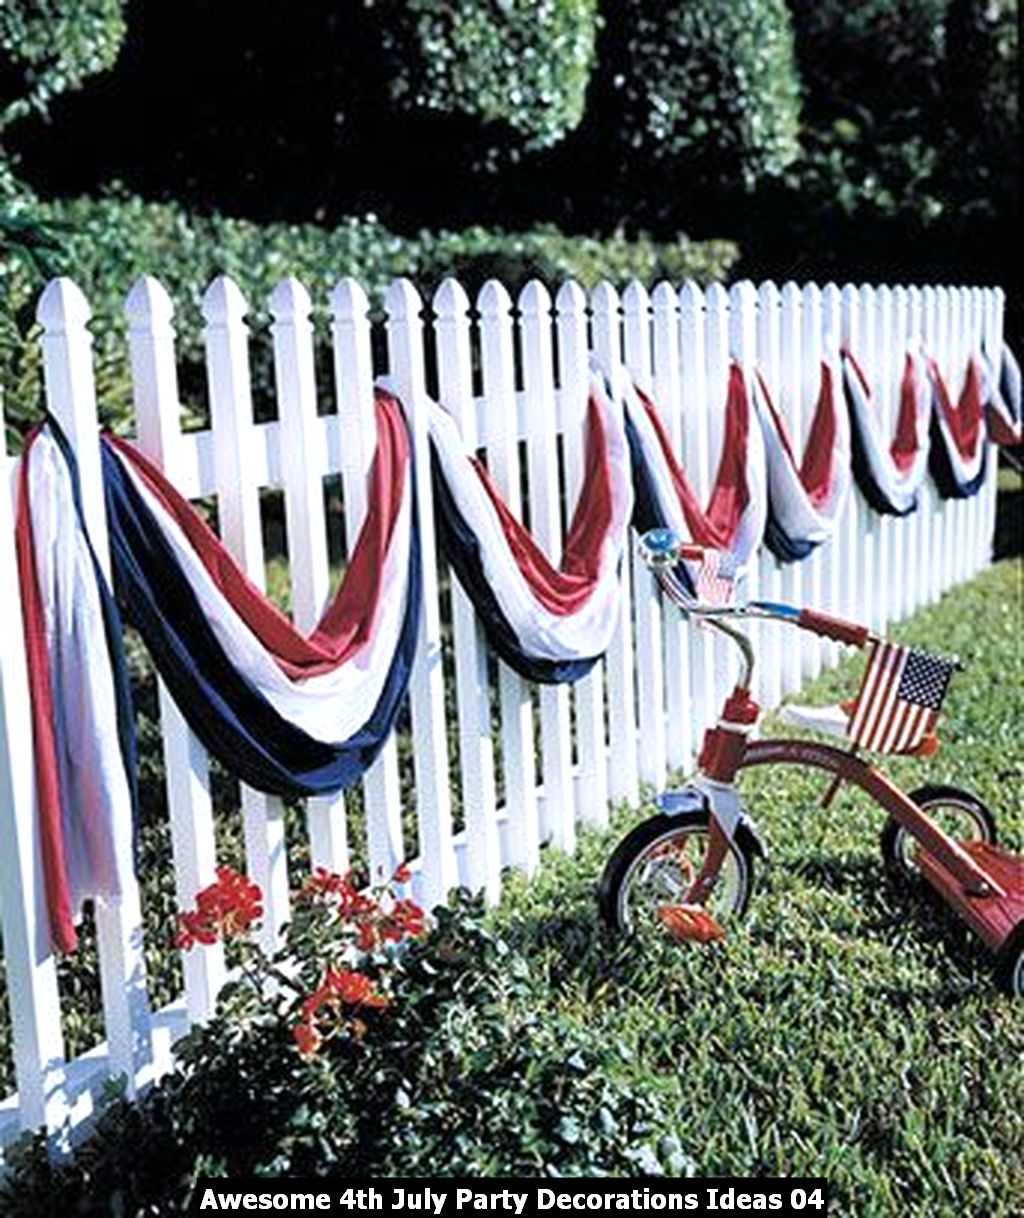 Awesome 4th July Party Decorations Ideas 04